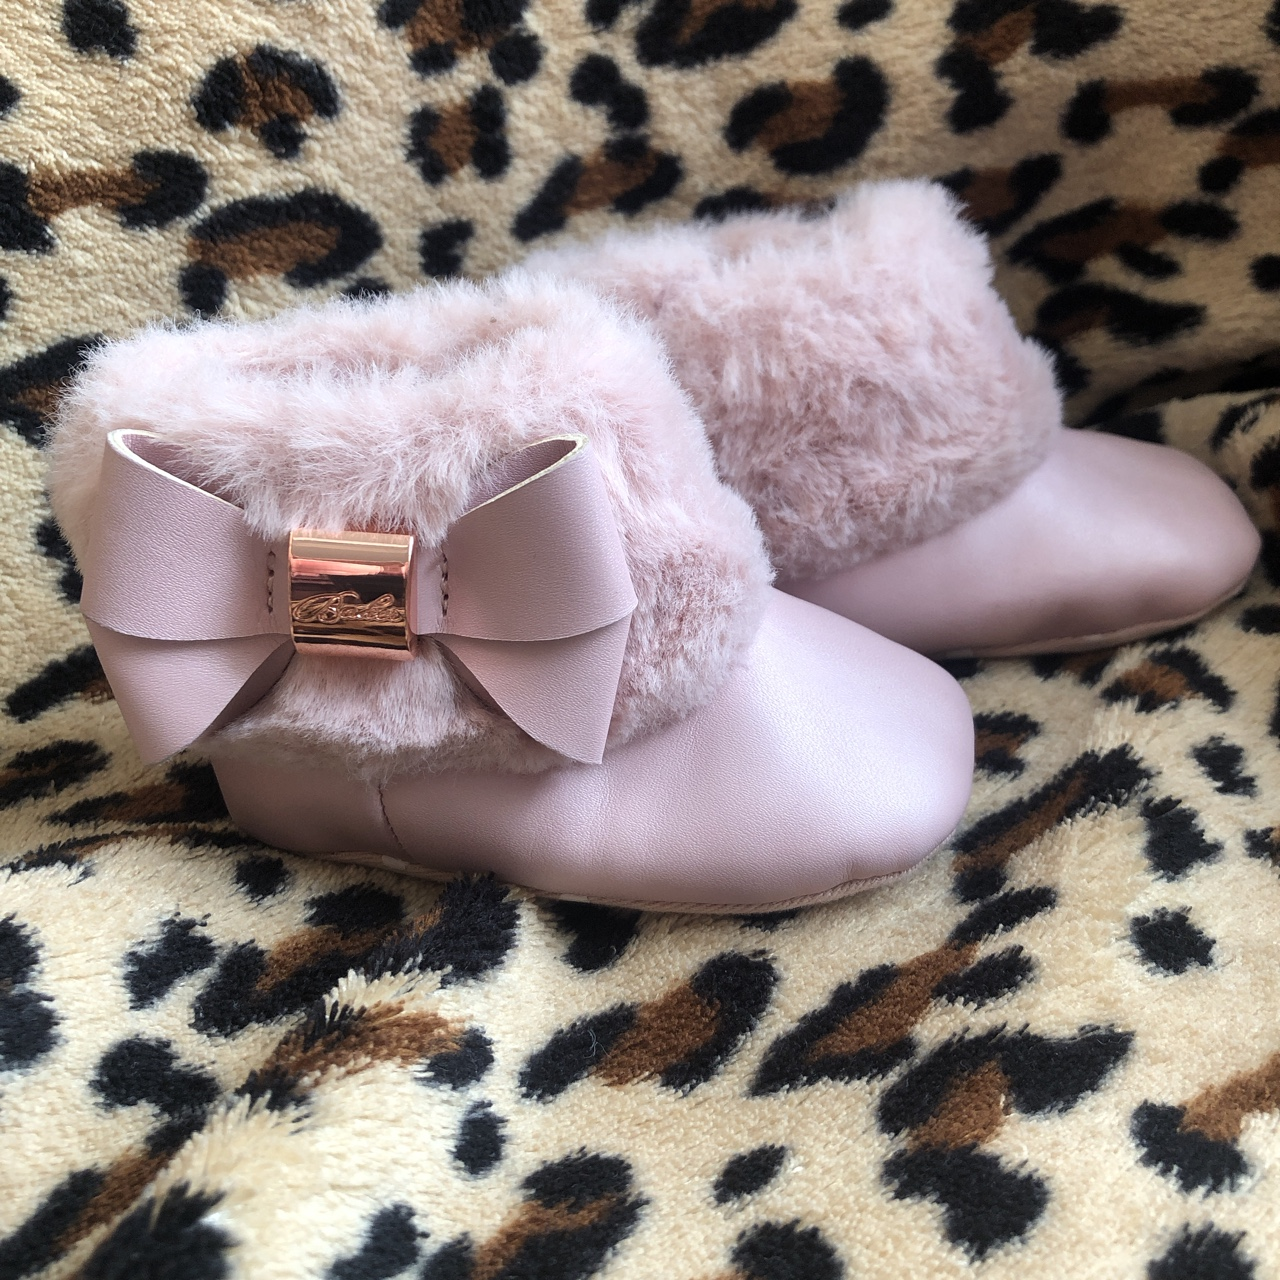 Ted Baker Baby Boots 👢 Size: 0-3 months